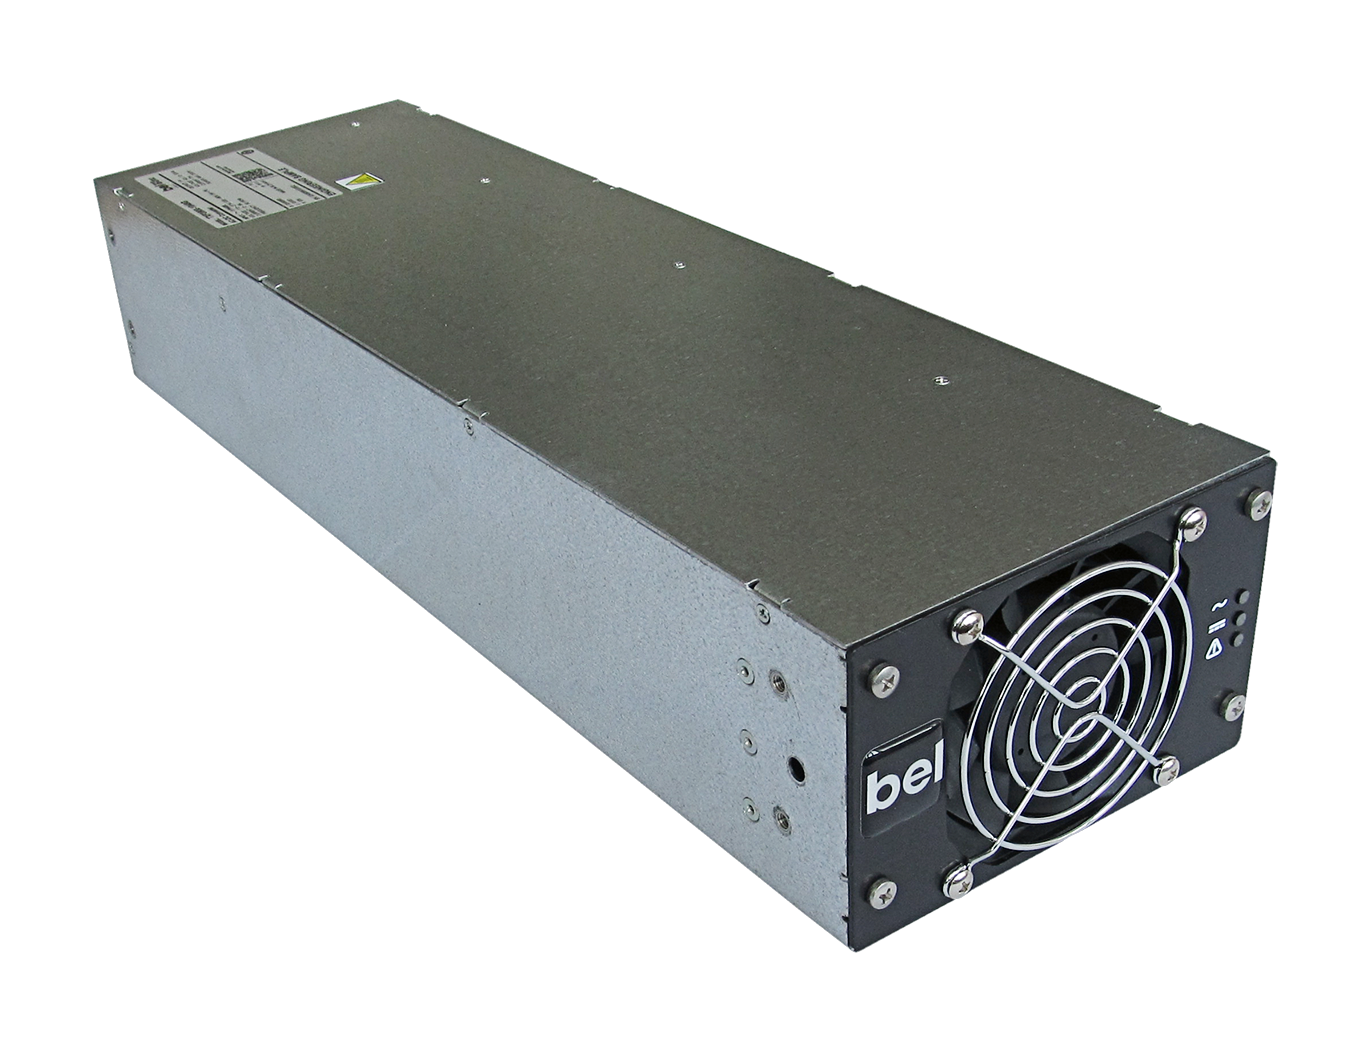 Expanded High Power Portfolio for Industrial Applications